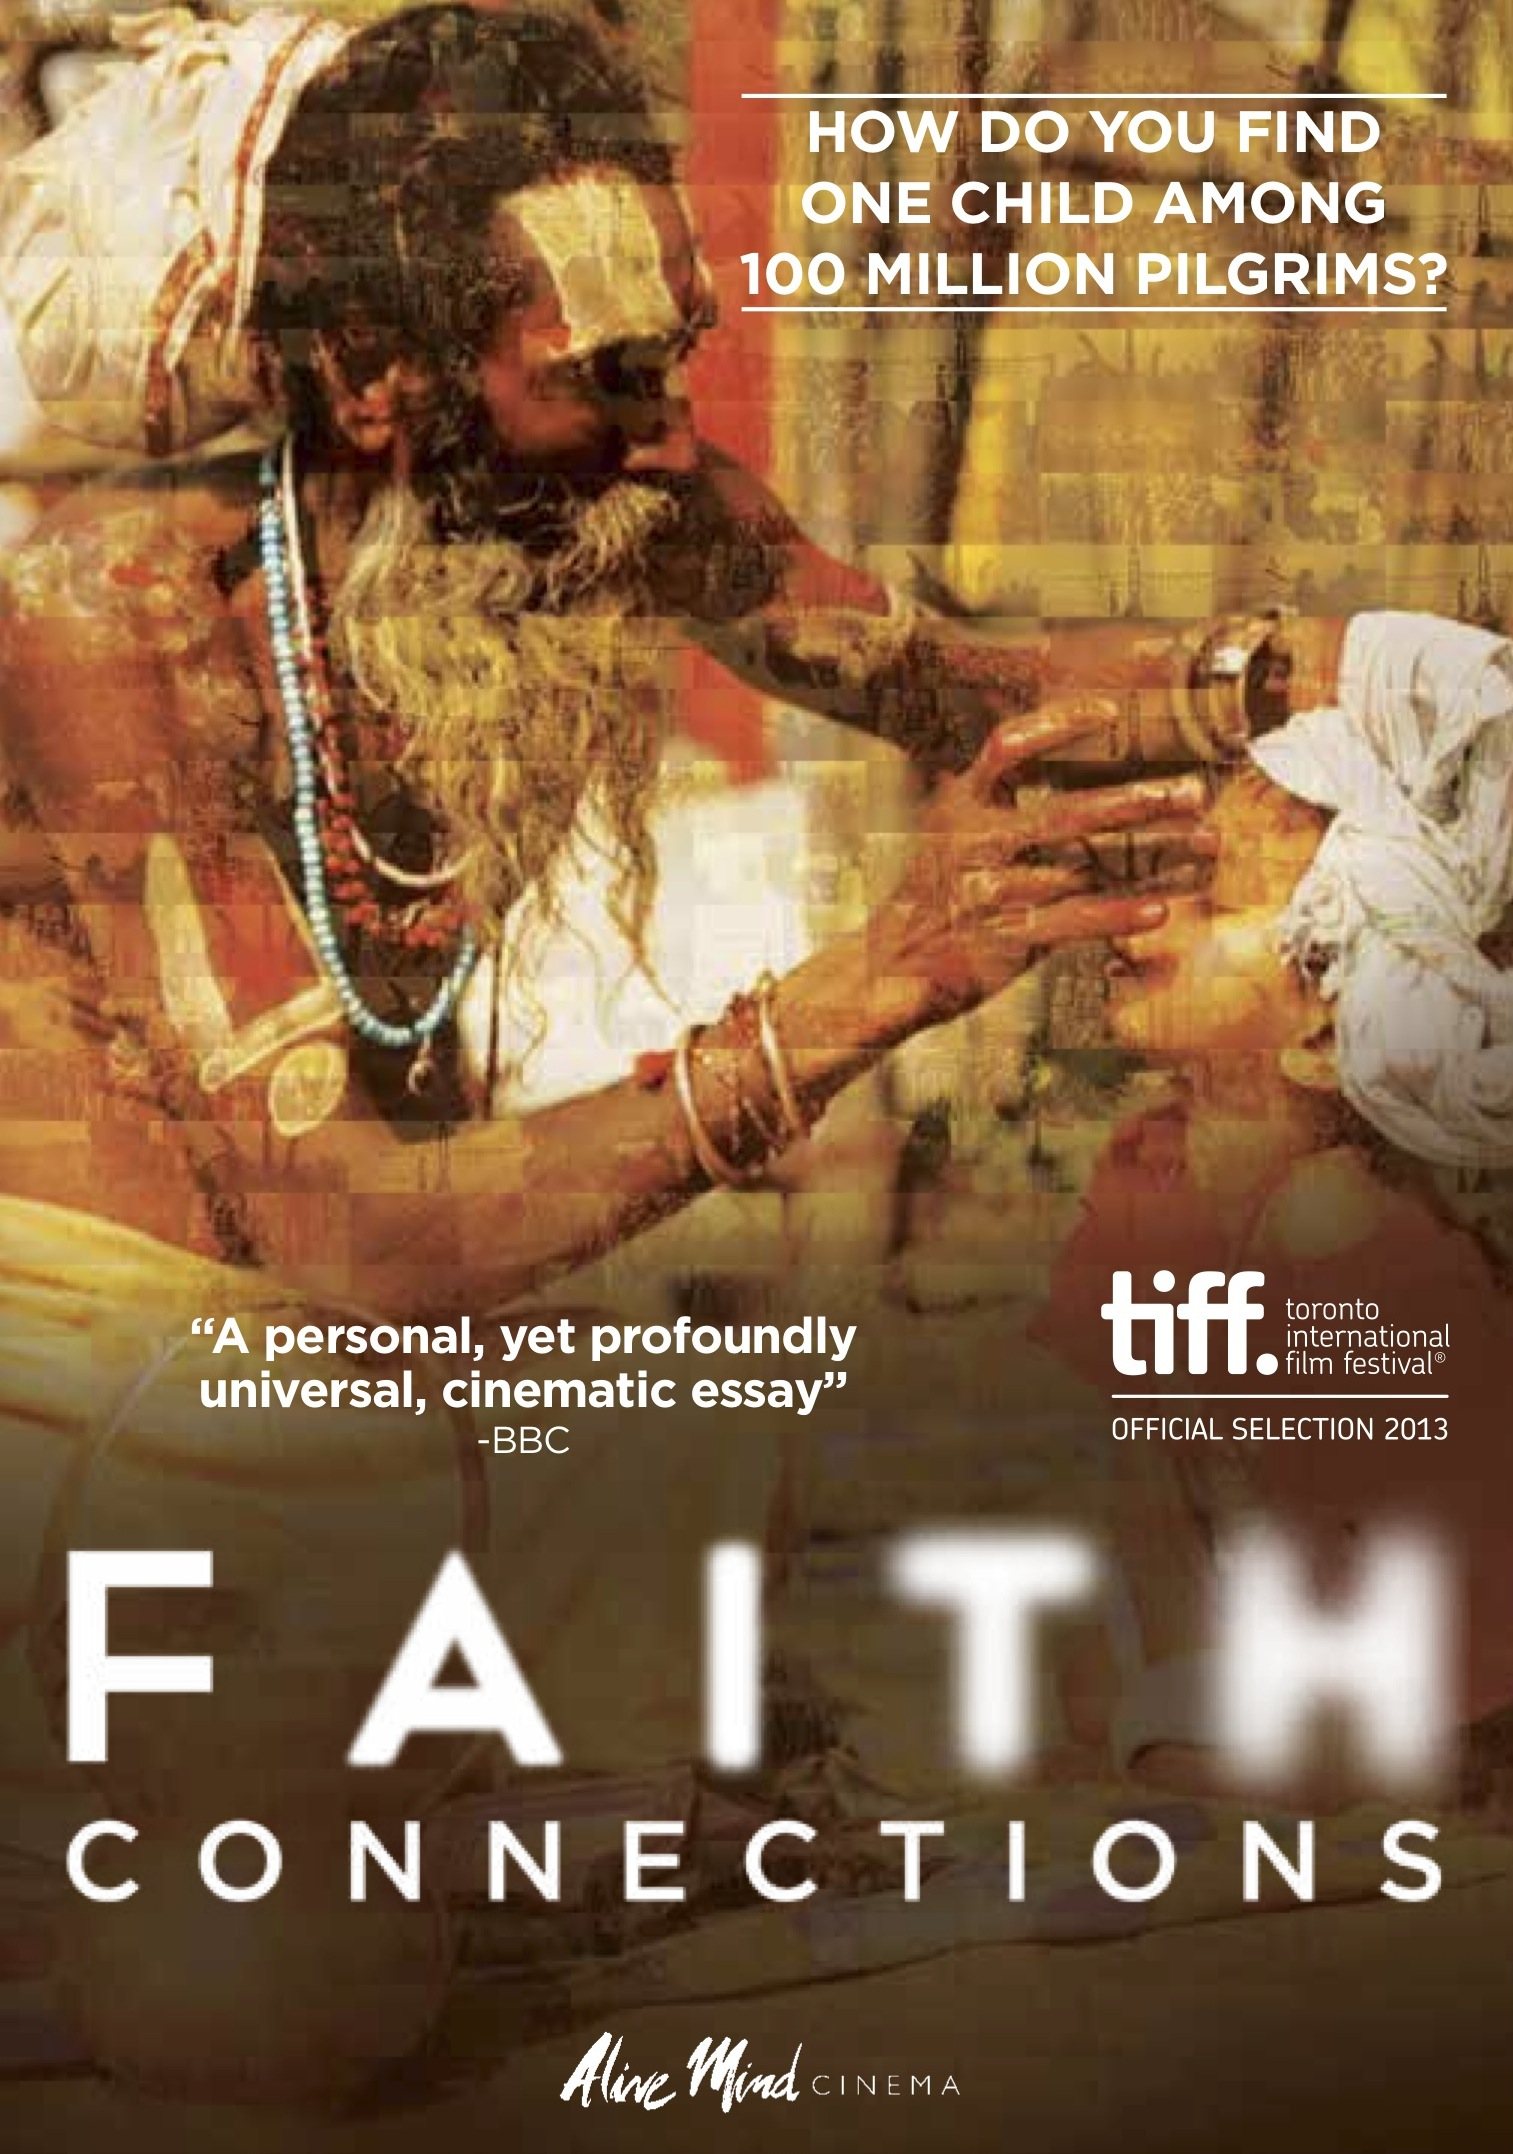 cinematic essay documentary These documentaries belong on the big screen these documentaries belong on the big screen whenever i tell someone that i make documentary films, they almost always offer a very.